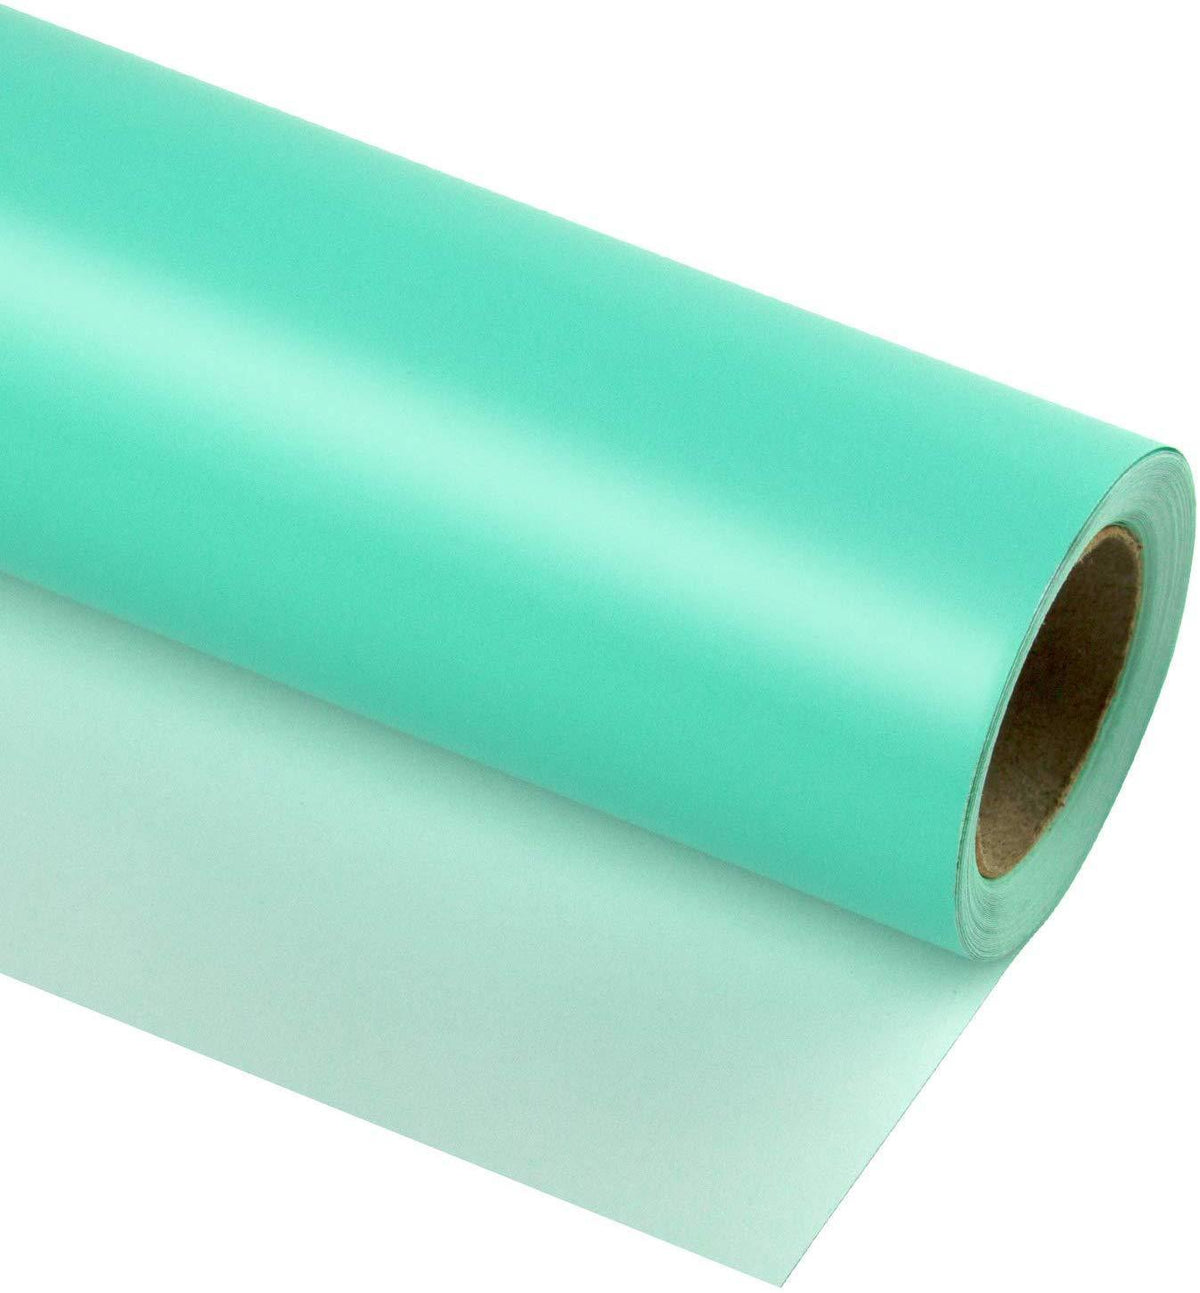 wrapaholic-glossy-mint-gift-wrap-roll-m